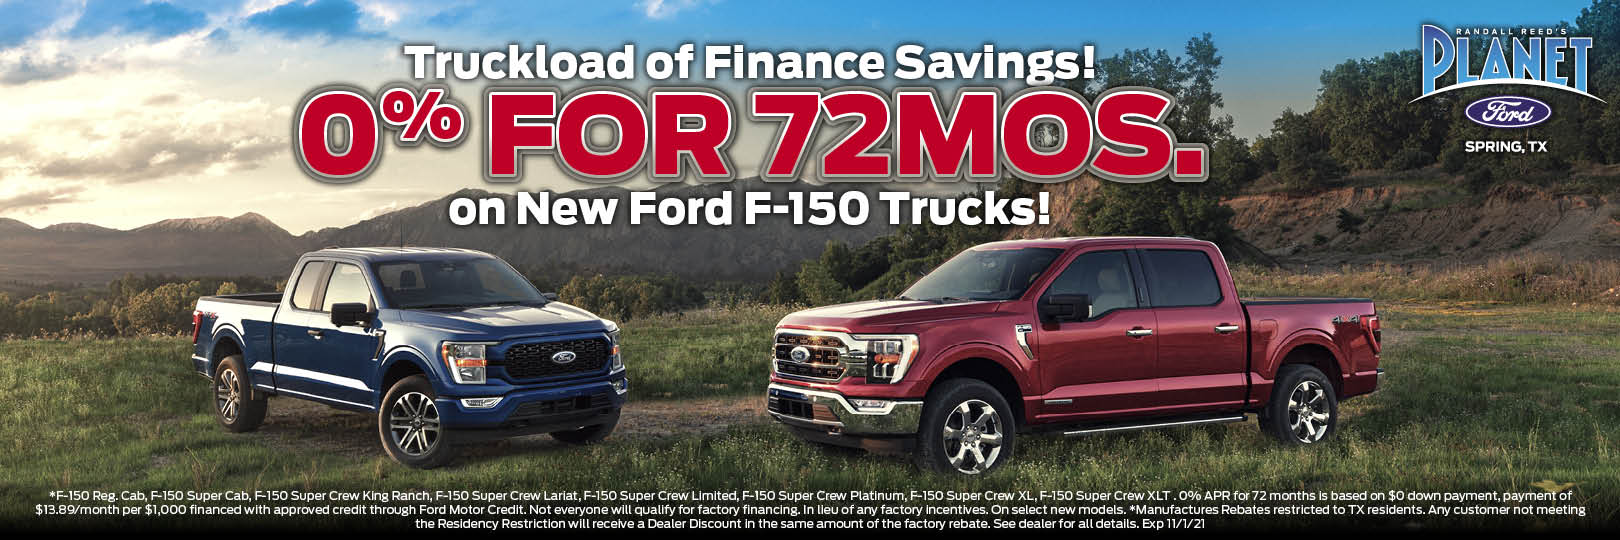 Ford F-150 finance special